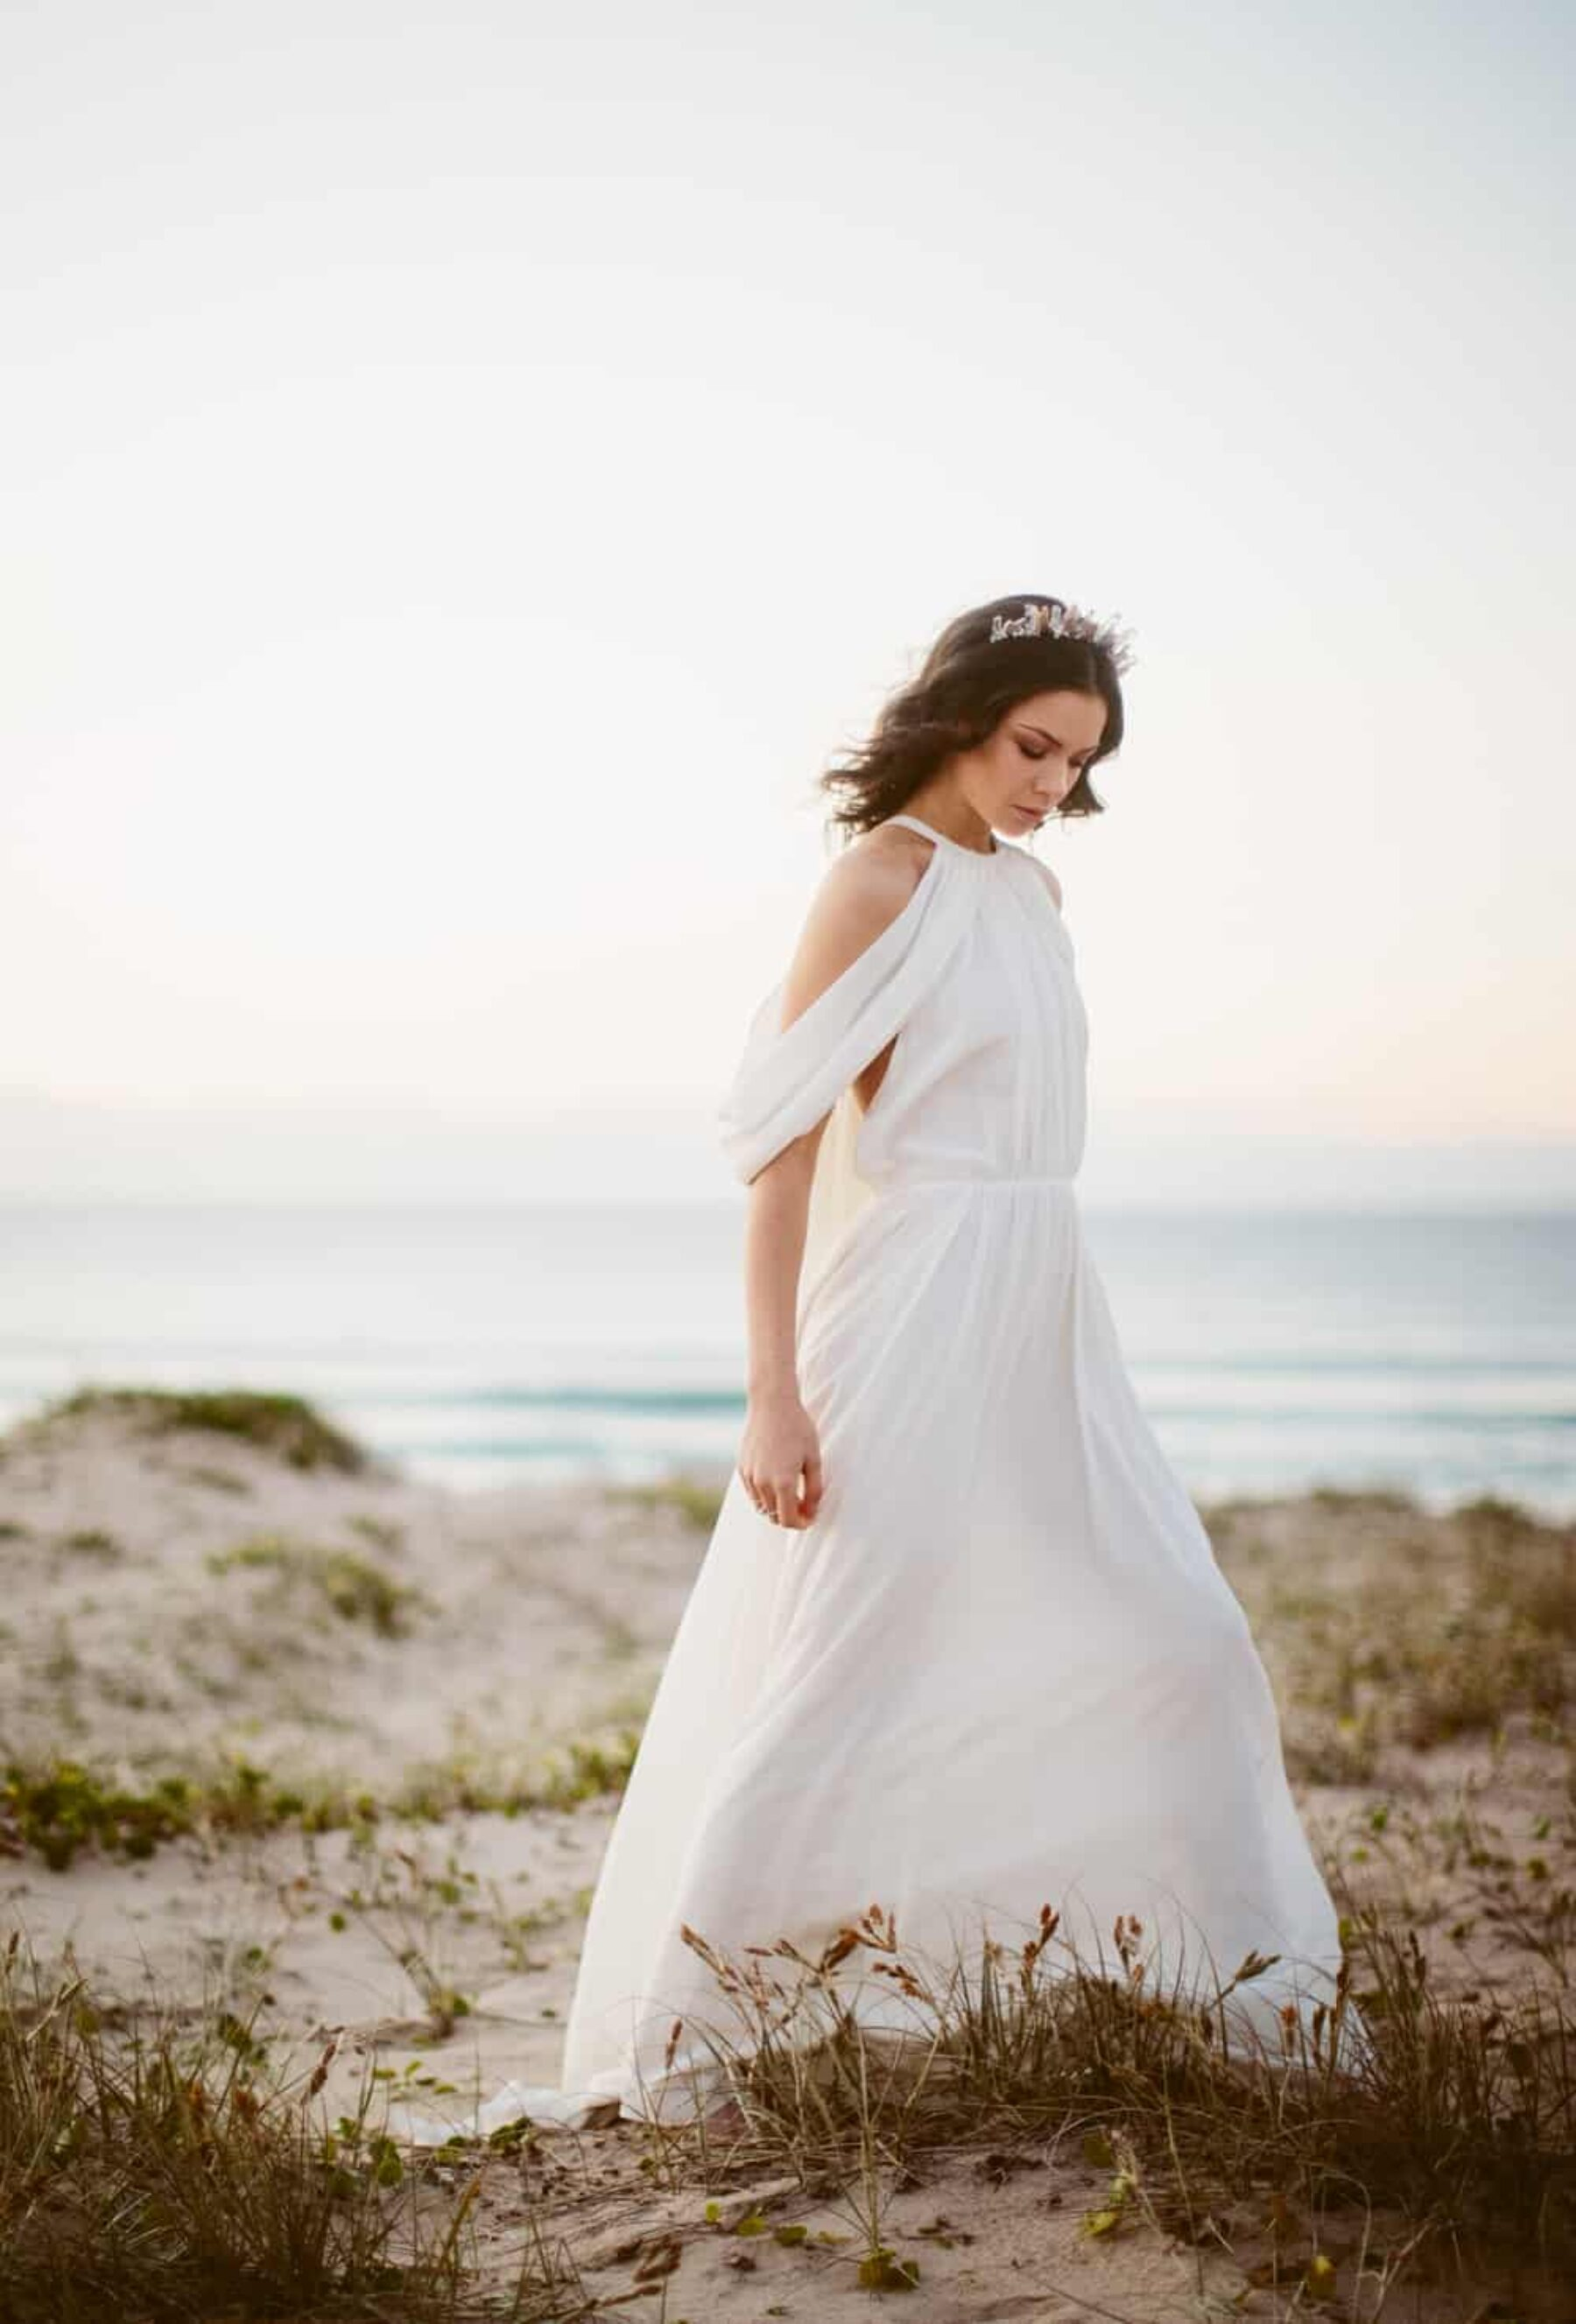 Grecian off-shoulder wedding dress by Odylyne the Ceremony